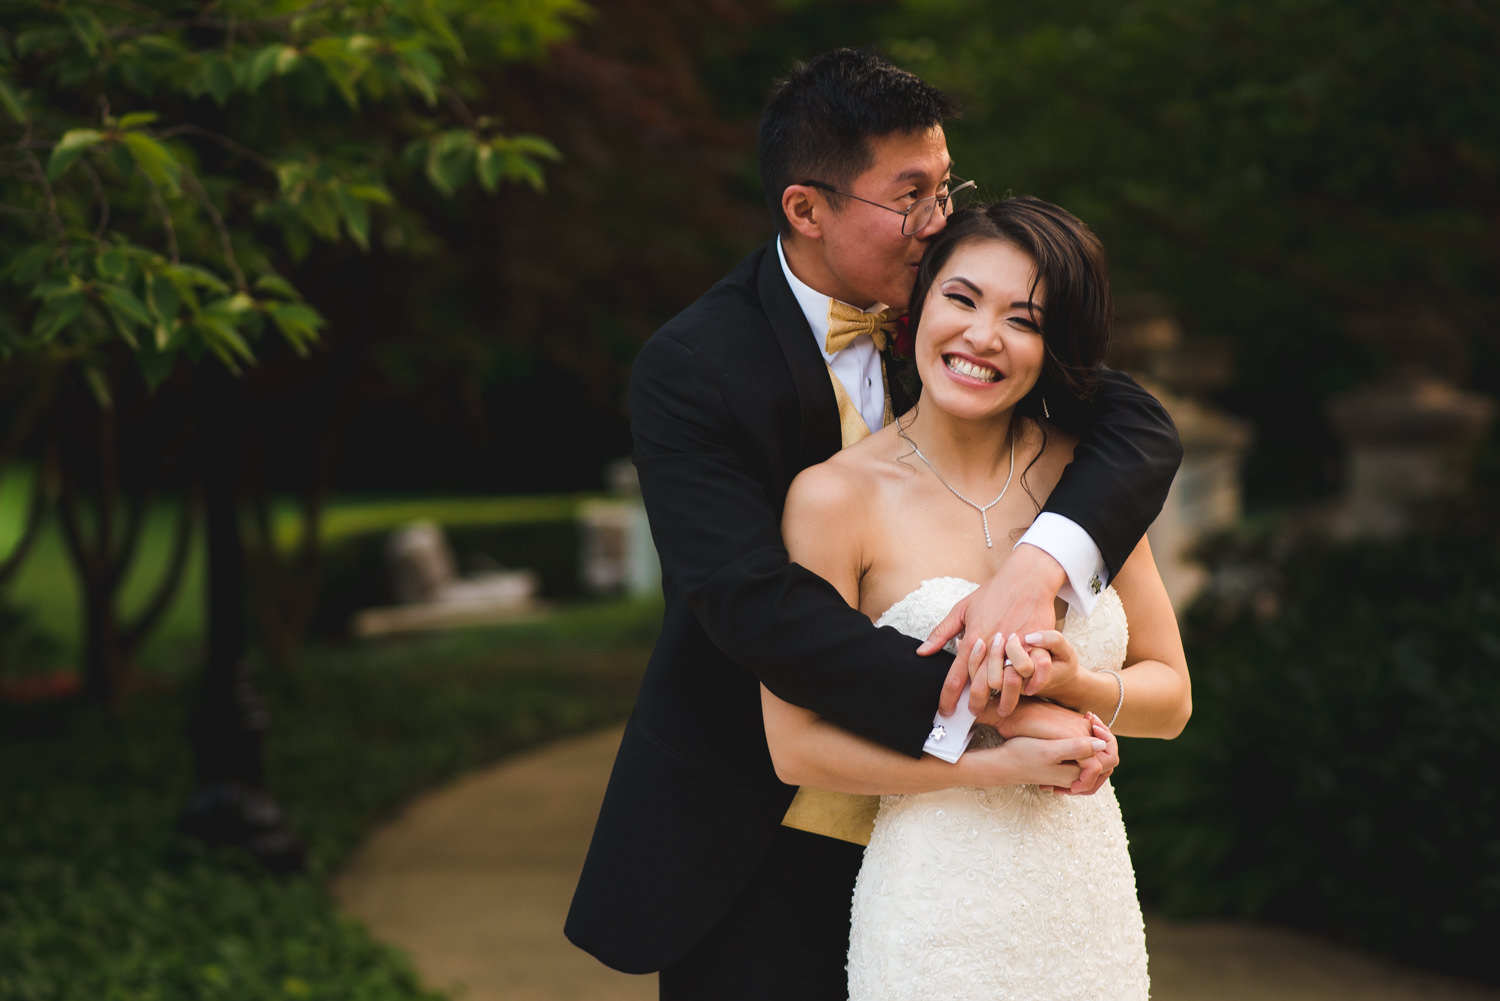 Elegant-Luxury-Asian-Wedding-at-Omni-Shoreham-Hotel